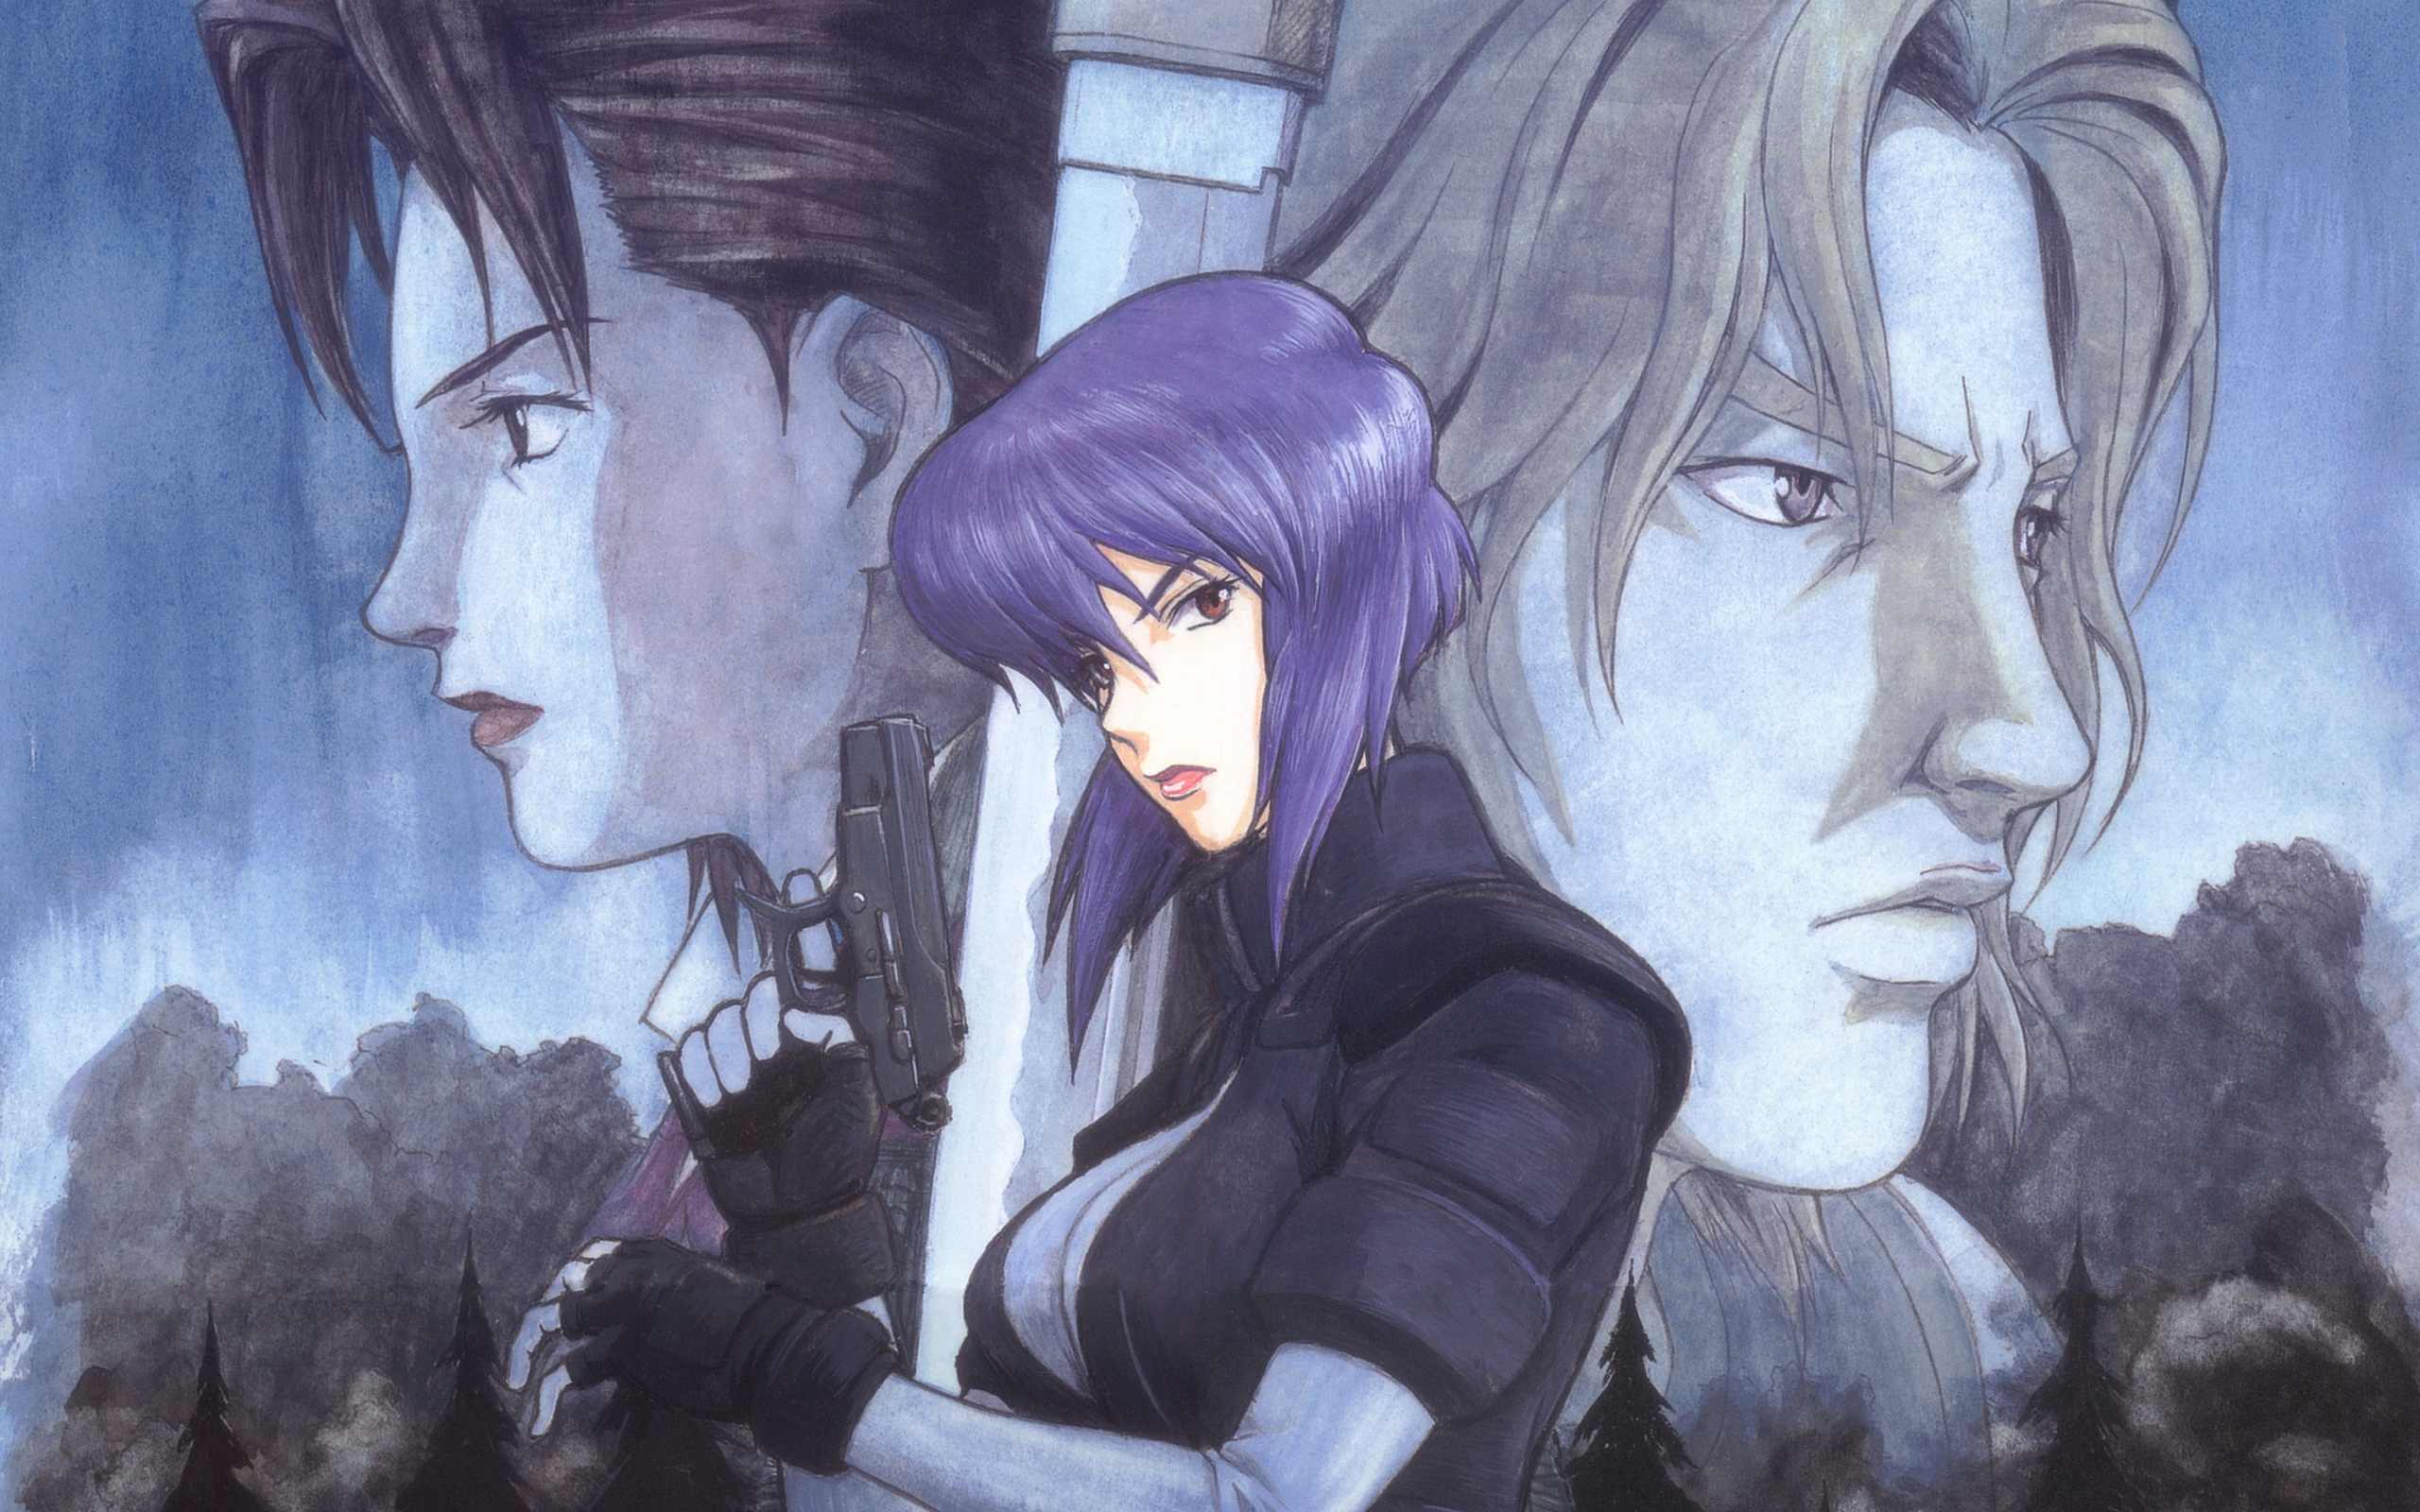 Ghost Anime Girl Wallpaper Ghost In The Shell Full Hd Wallpaper And Background Image